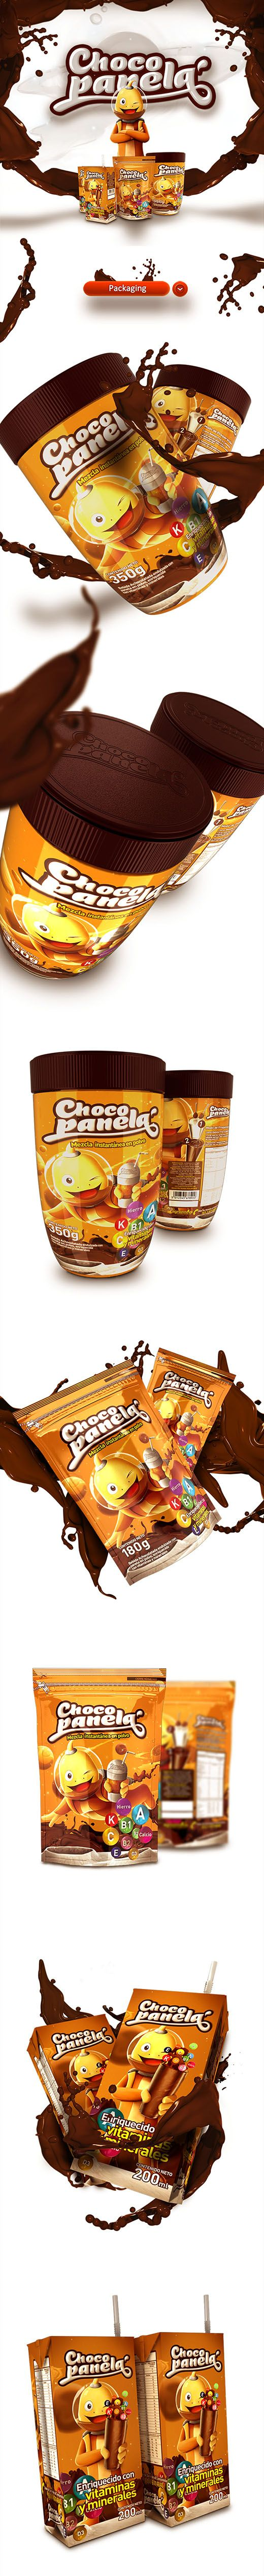 CHOCOPANELA BAG, POT AND CARTONS Packaging Development